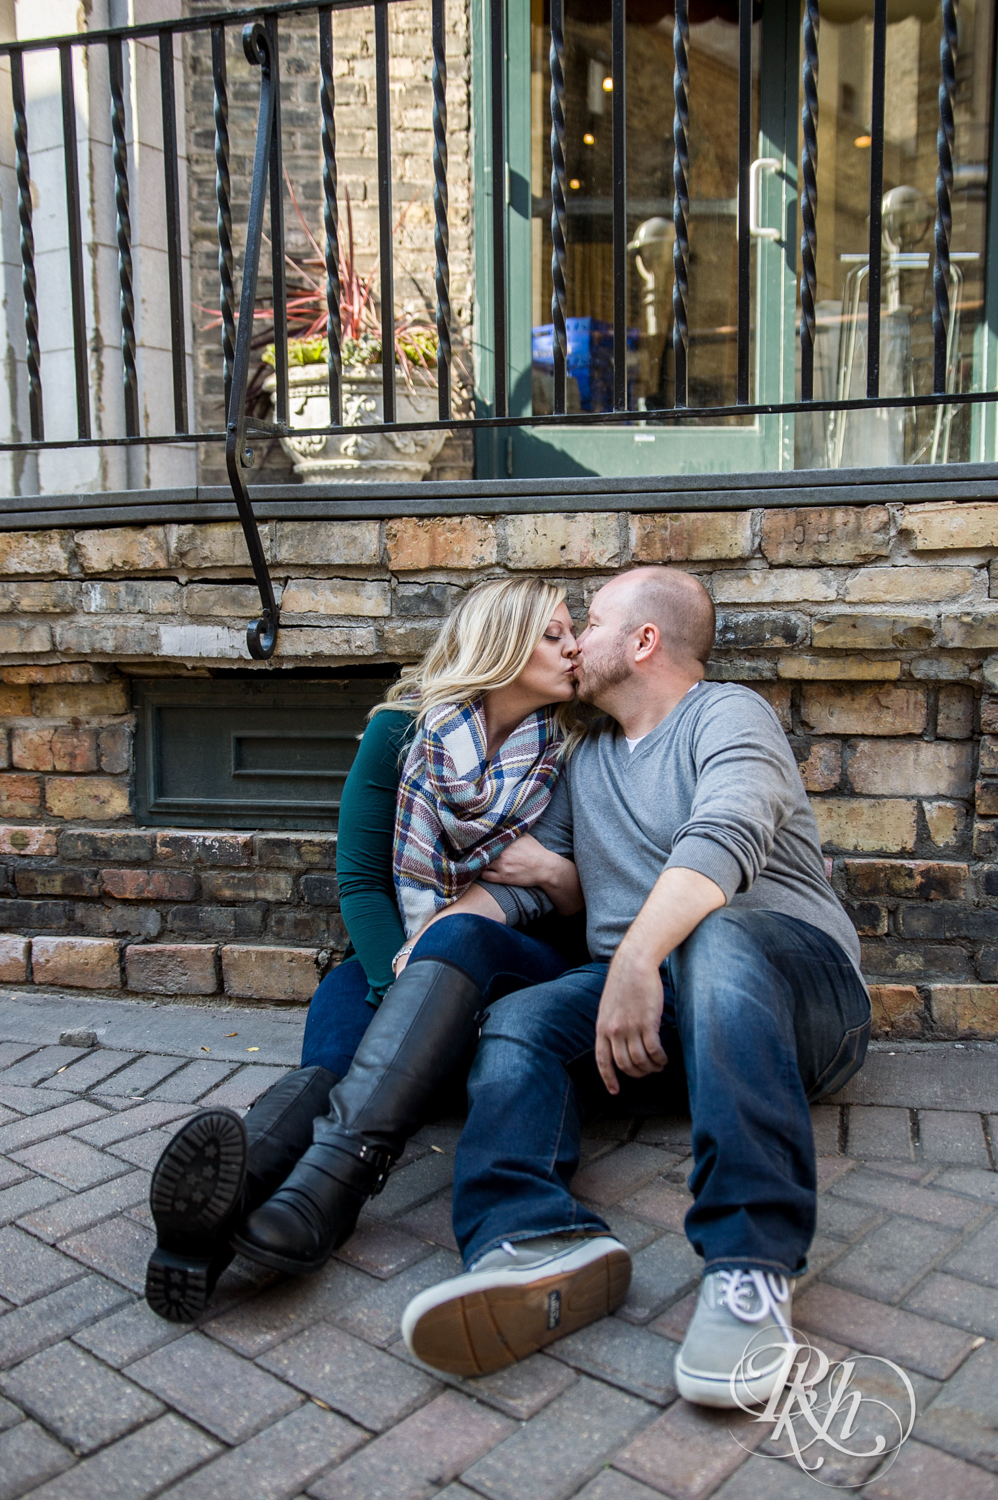 Shannon & Brian - Minnesota Engagement Photography - Loring Park - RKH Images - Blog  (8 of 16).jpg